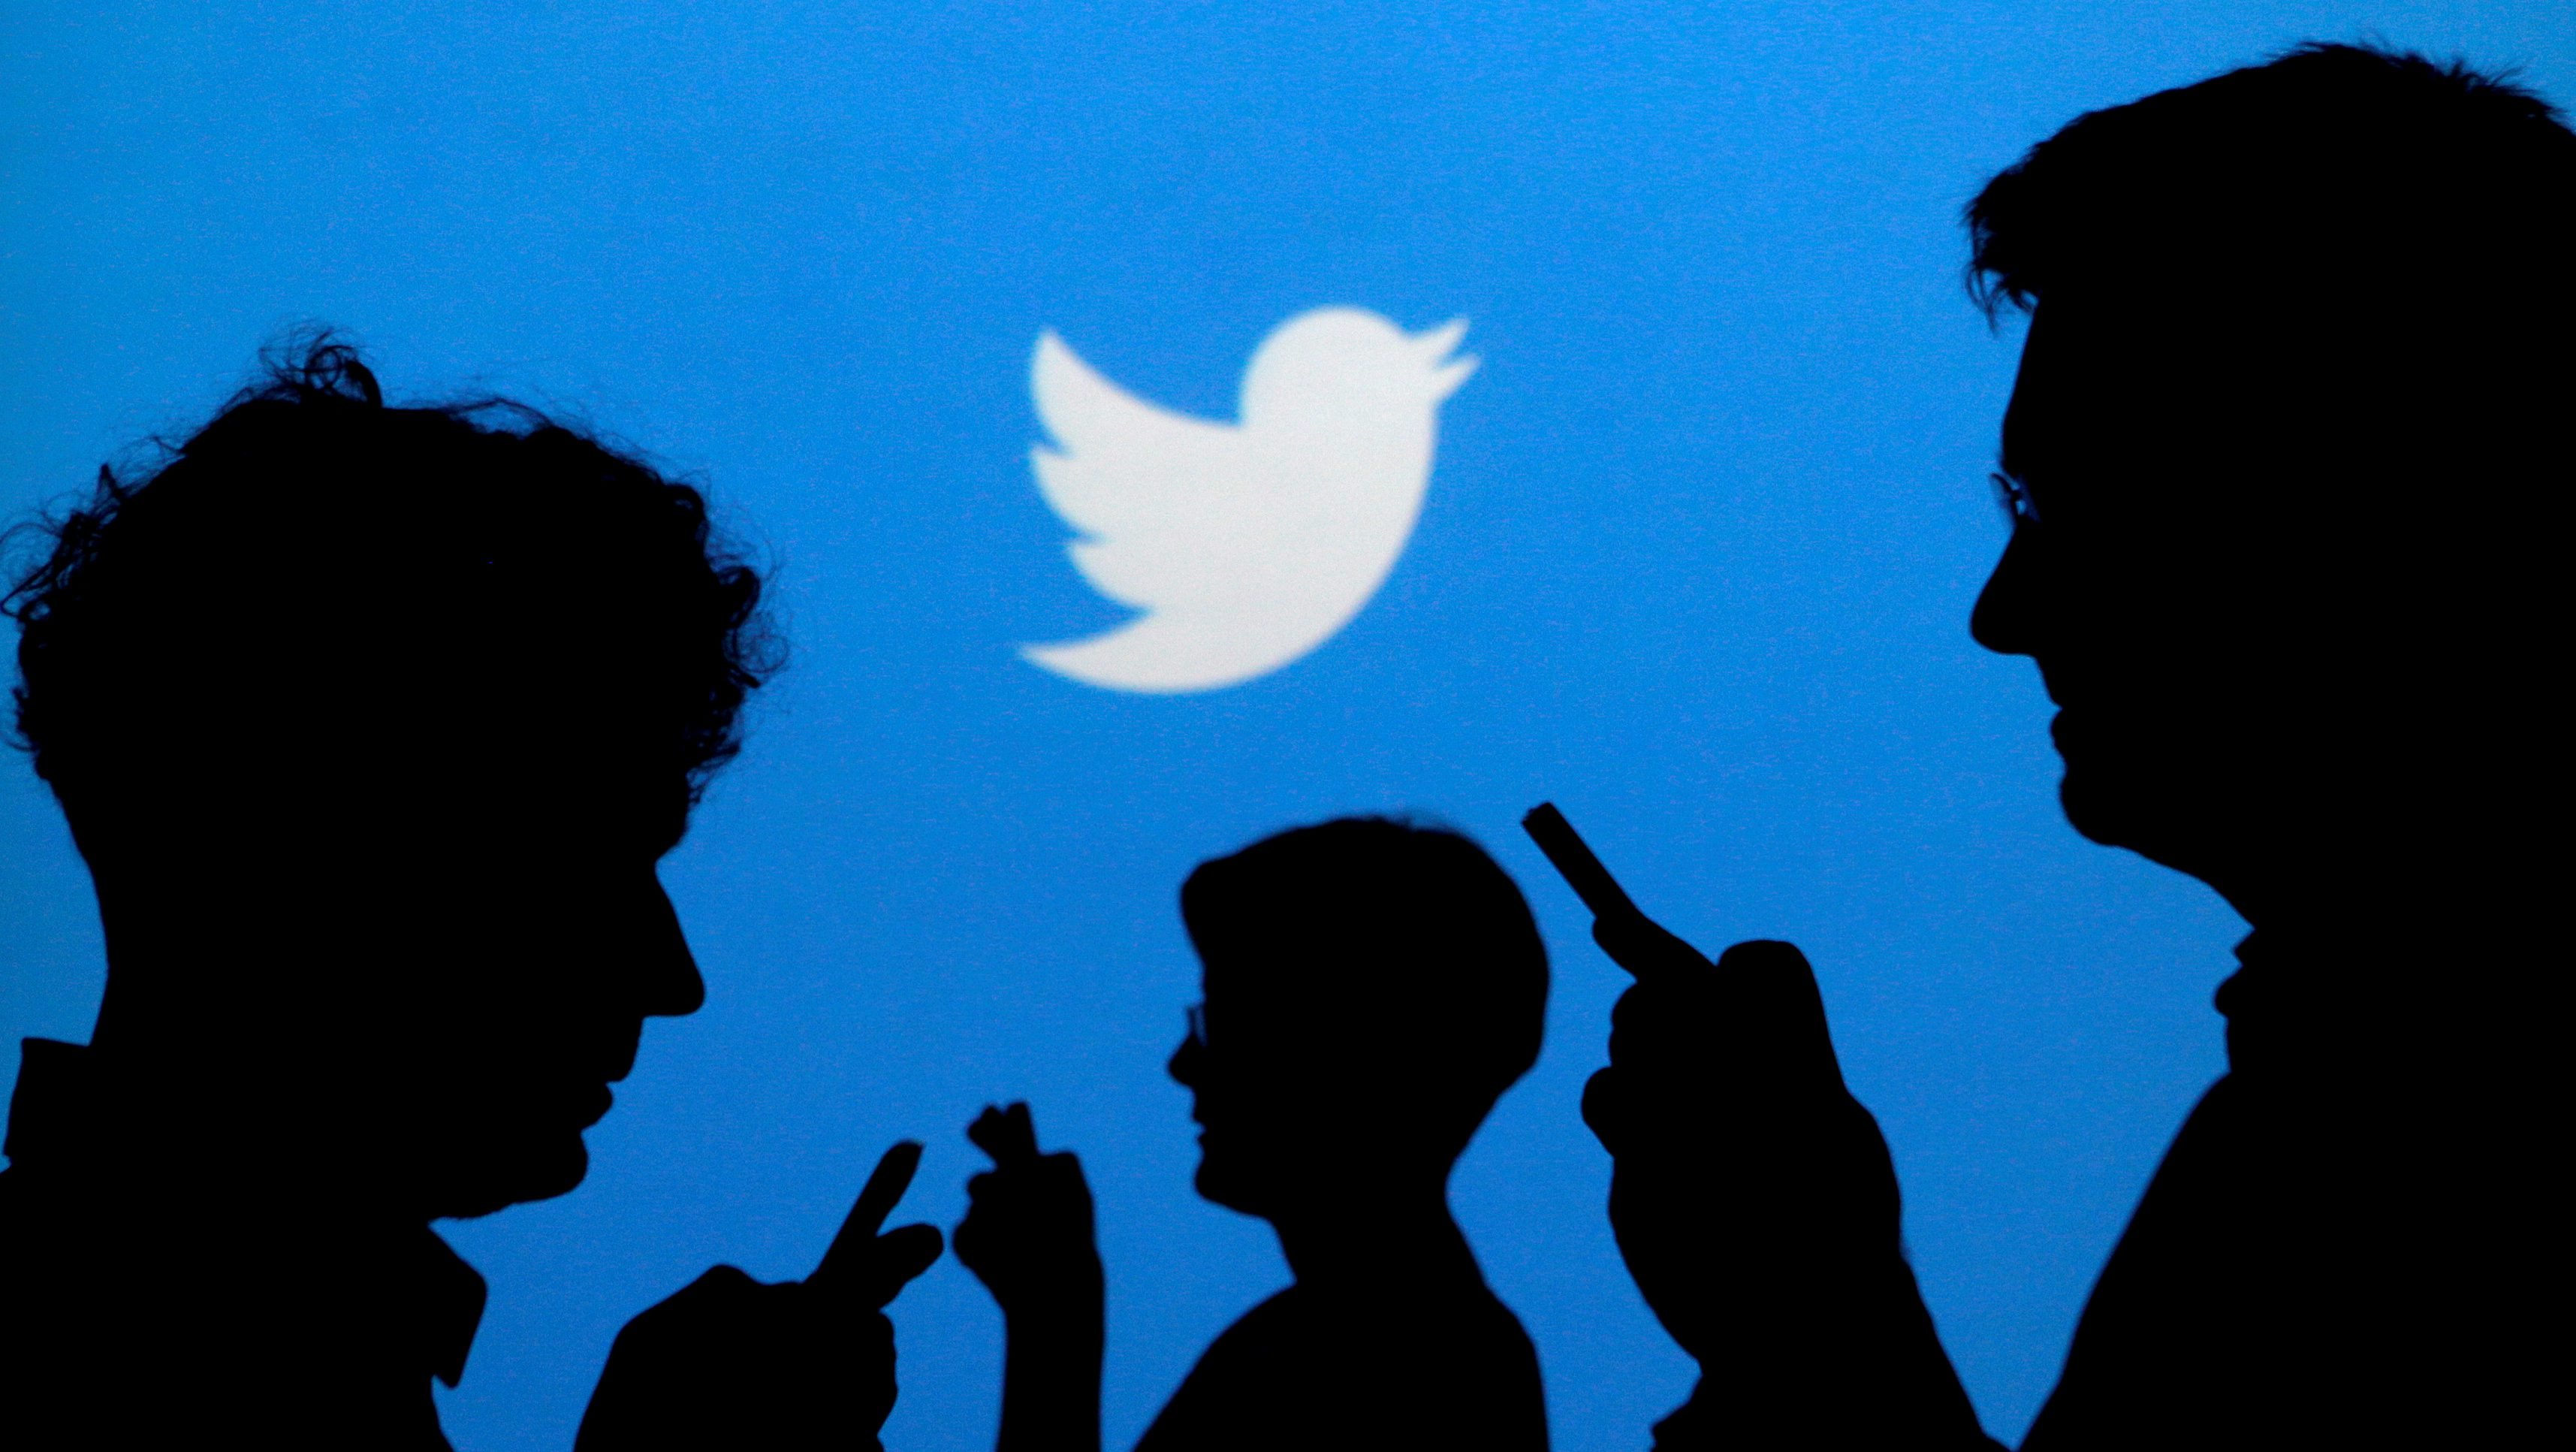 FILE PHOTO: People holding mobile phones are silhouetted against a backdrop projected with the Twitter logo in this illustration picture taken September 27, 2013. REUTERS/Kacper Pempel/Illustration/File Photo - RC14CA681FC0